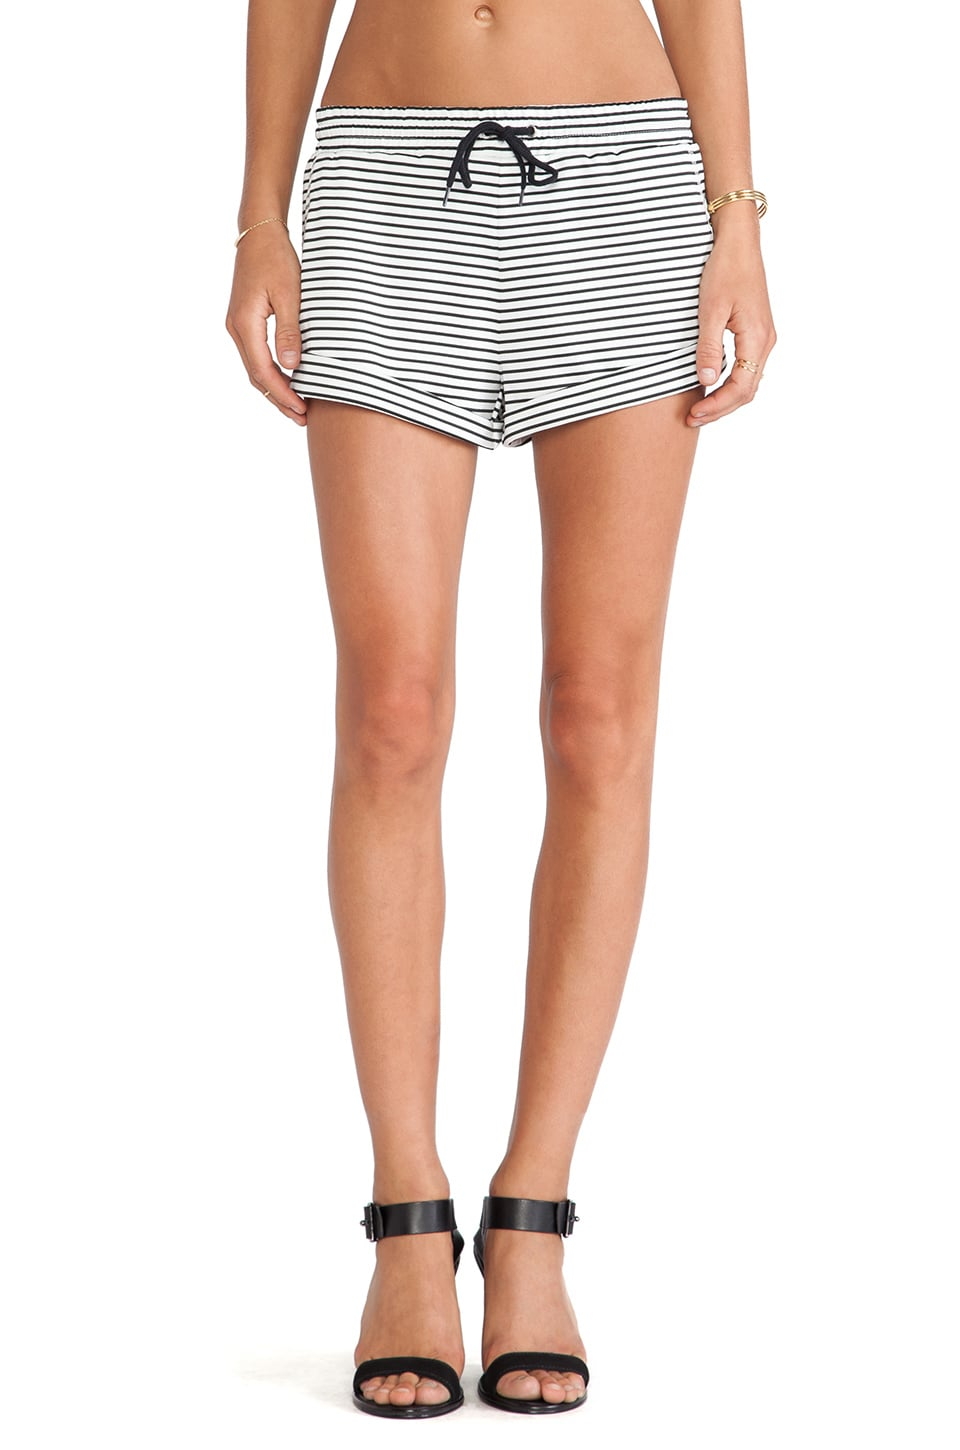 The Fifth Label Breeze Block Shorts in White & Black Stripe